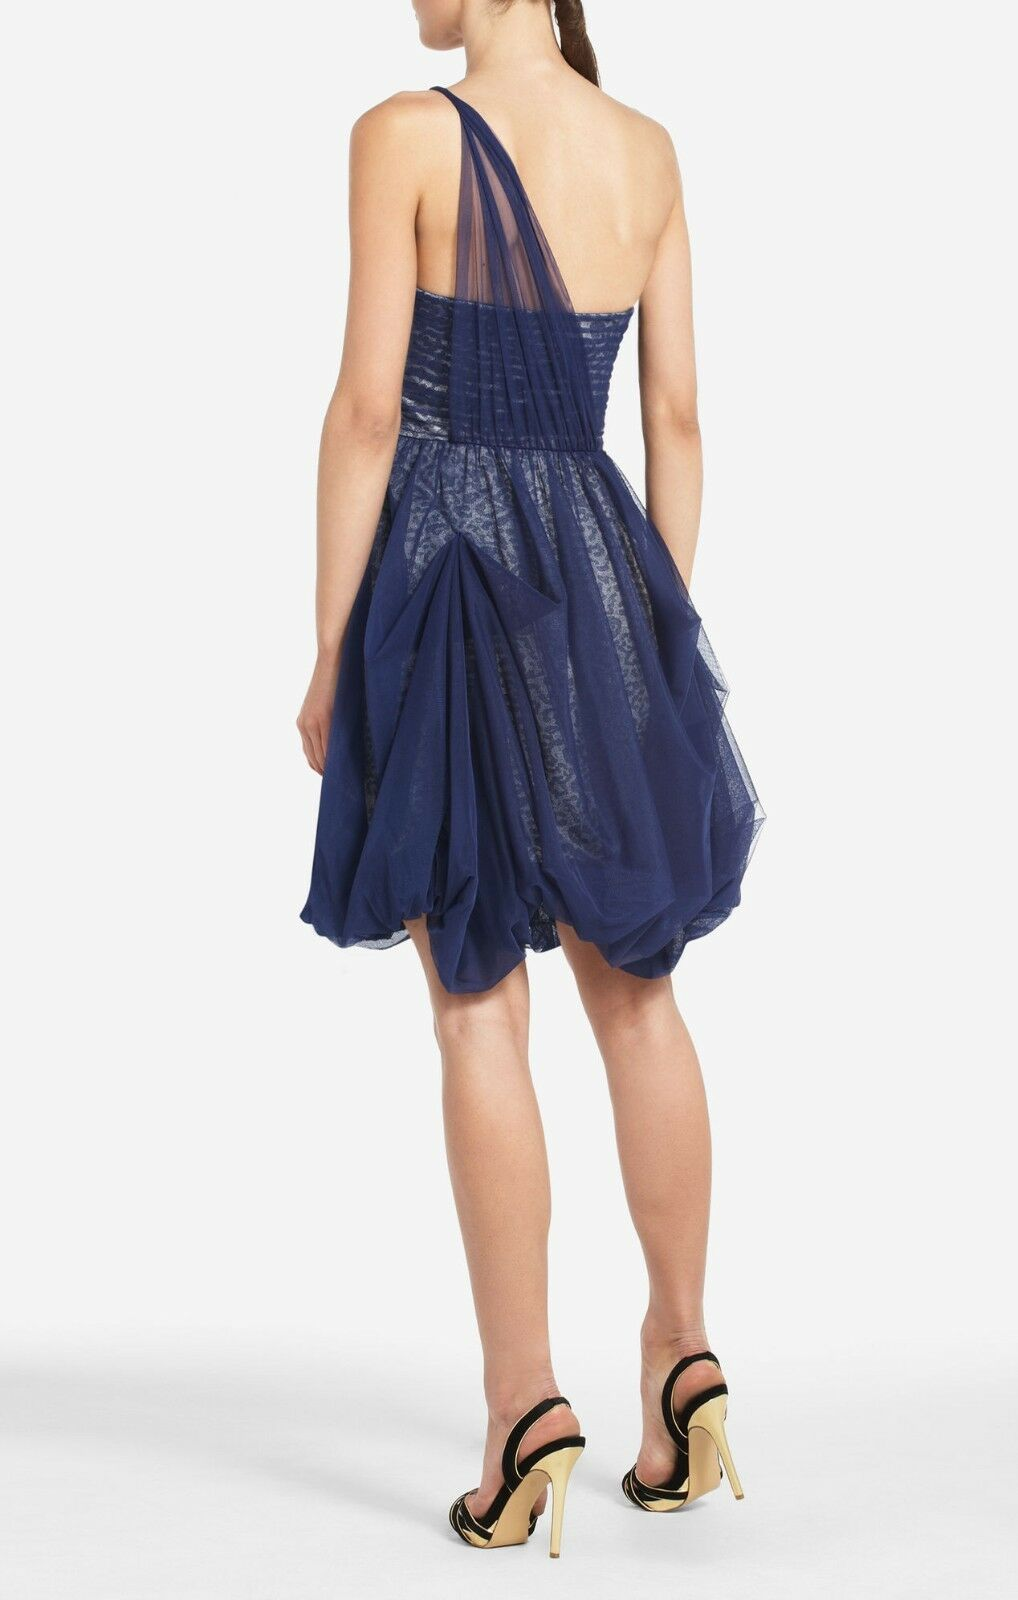 NEW BCBG MAX AZRIA DARK DARK DARK COBALT ROE ONE SHOULDER NST6P866 M200 DRESS SIZE 2 8778f9